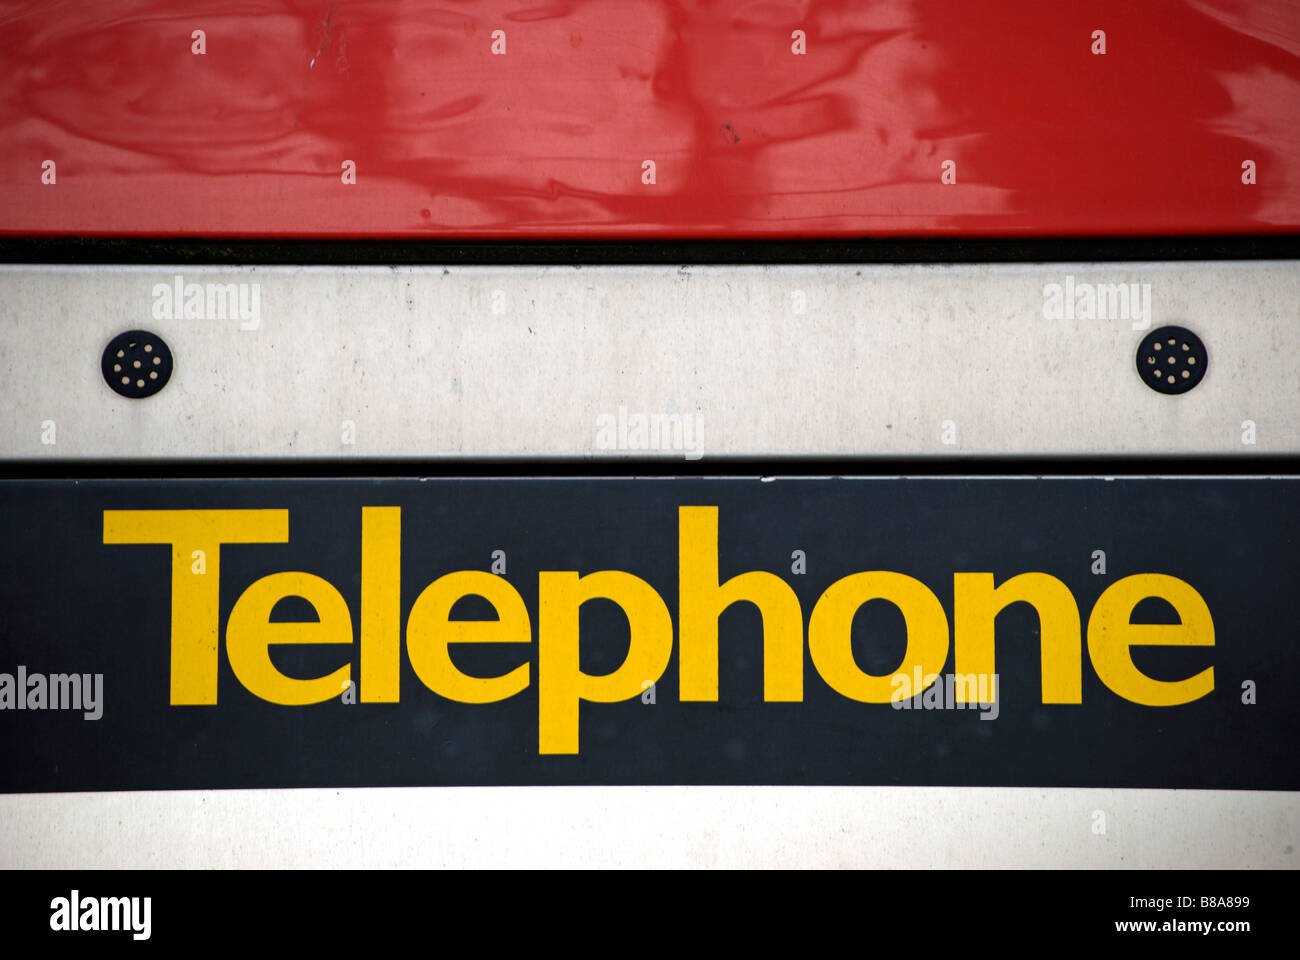 detail of a public telephone box in chiswick high road, west london, england - Stock Image